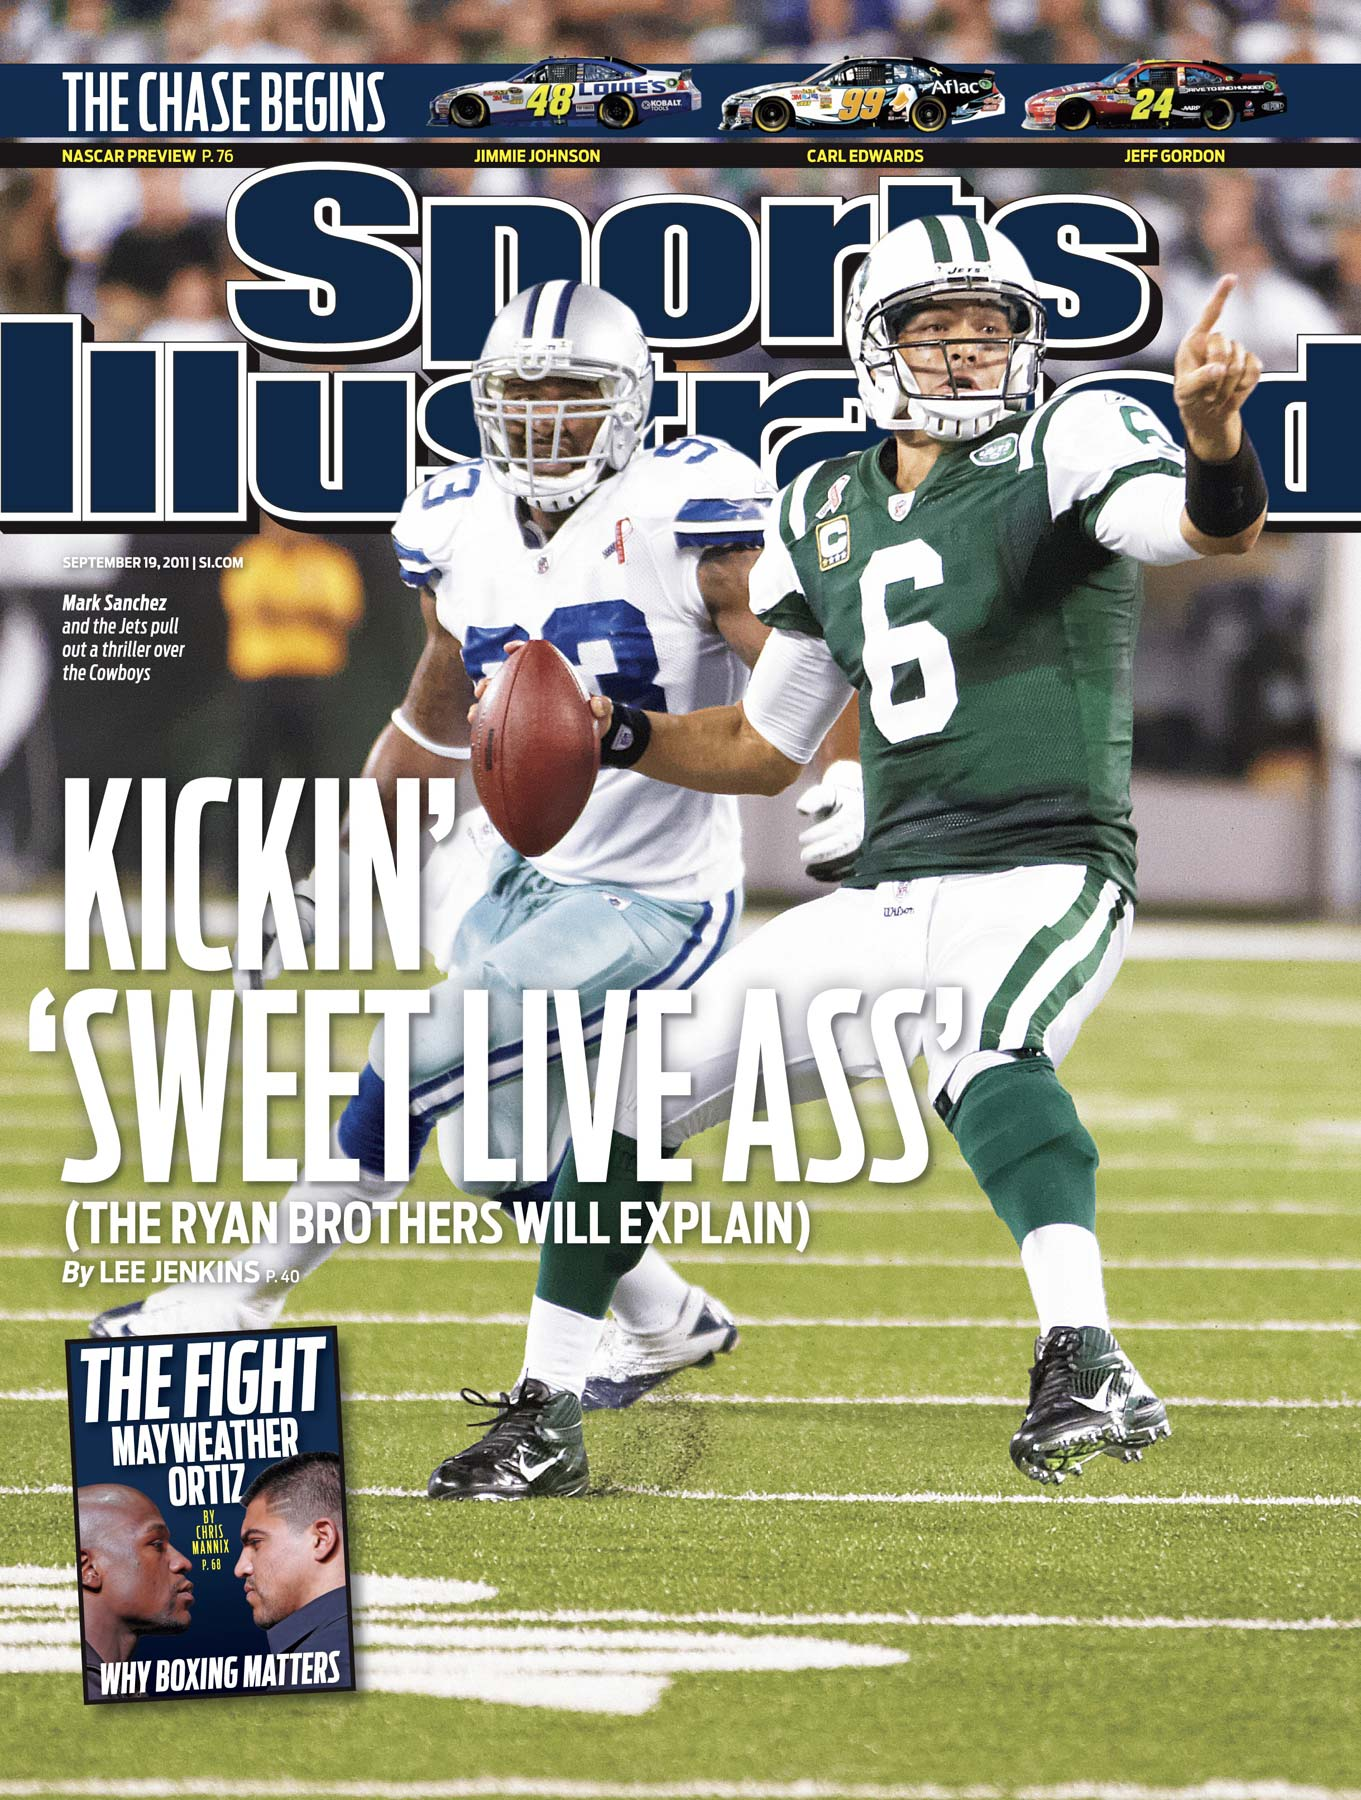 New York Jets quarterback Mark Sanchez on the cover of Sports Illustrated.